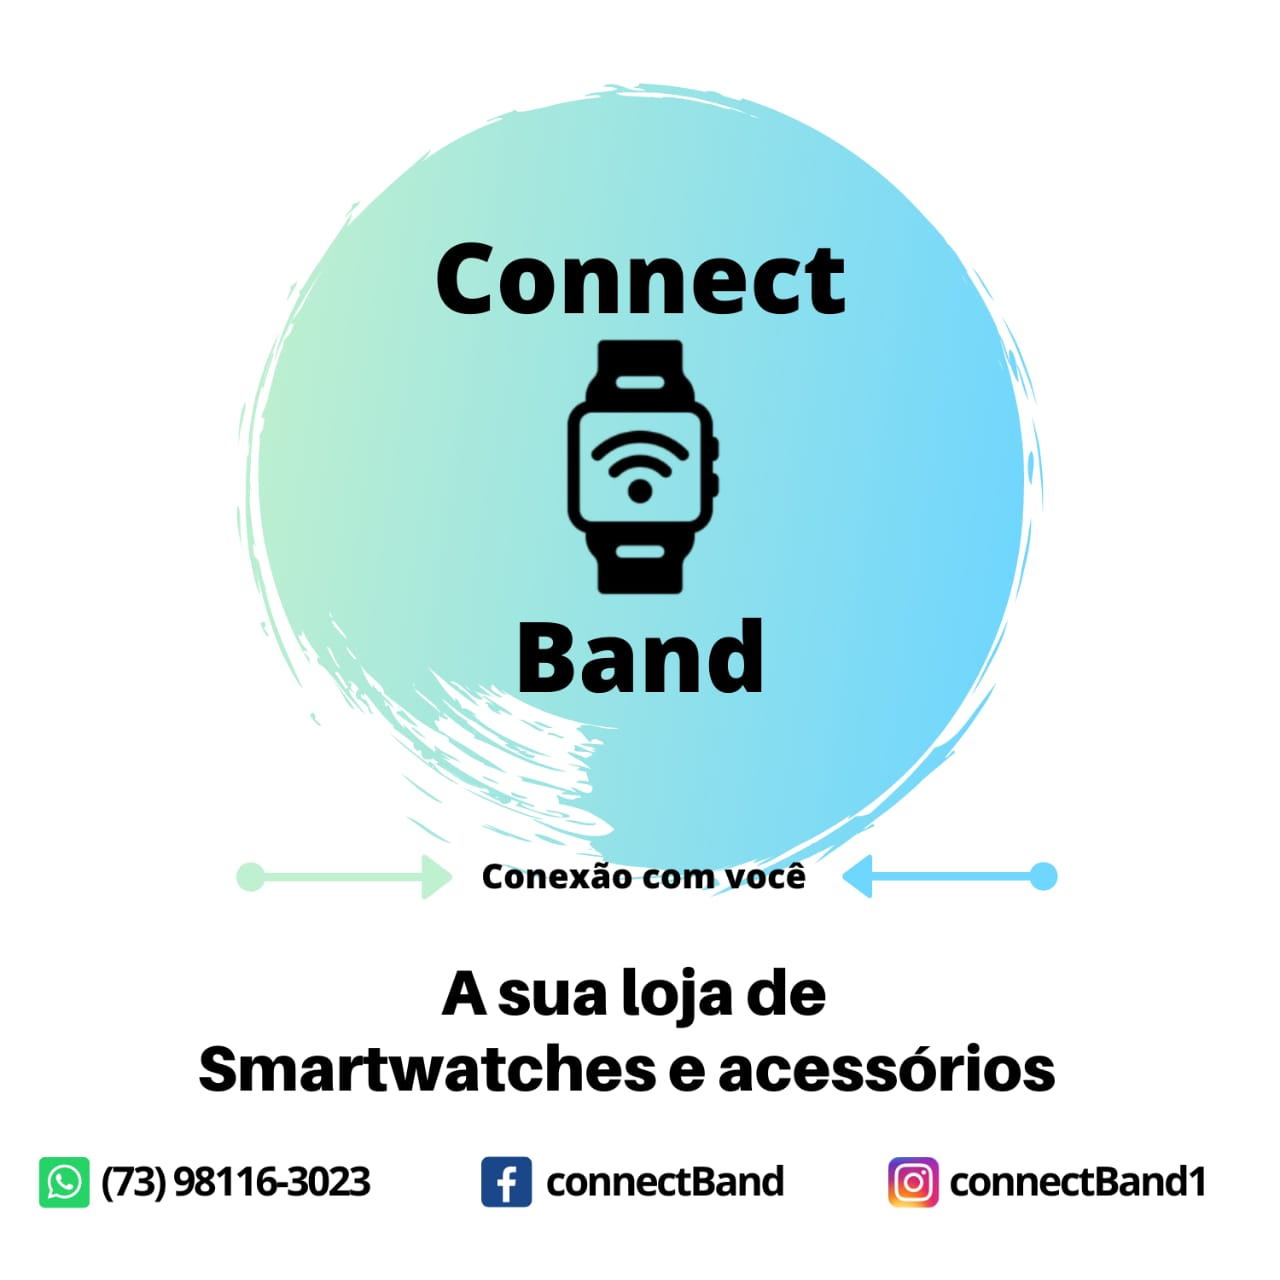 Connect Band